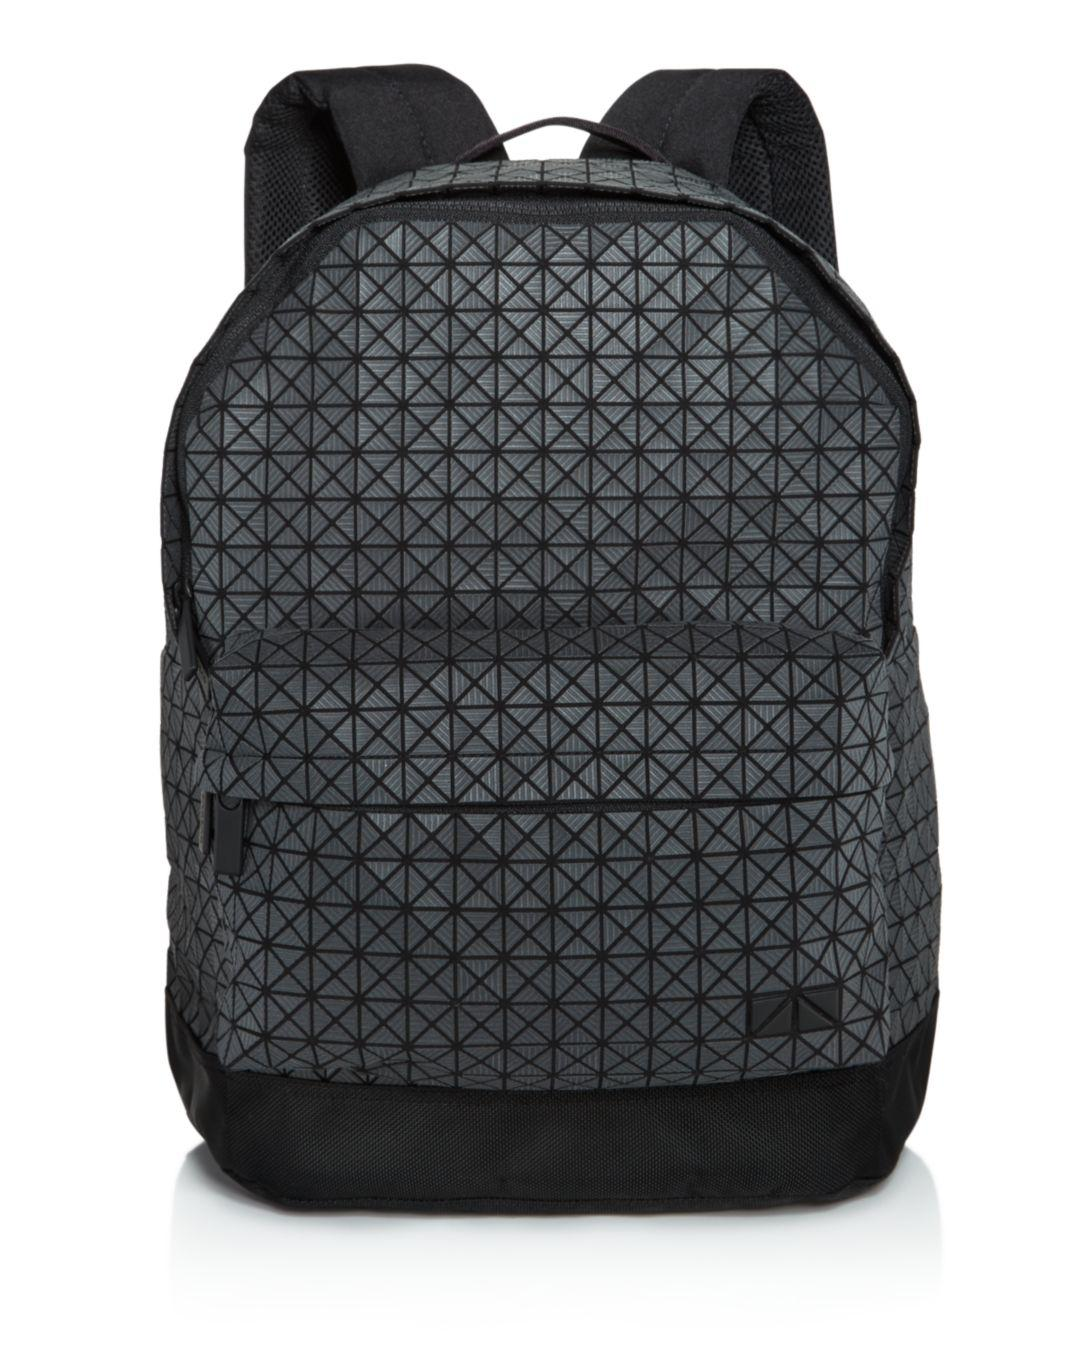 6ce1151056d2 Bao Bao Issey Miyake Geometric Backpack in Black for Men - Lyst